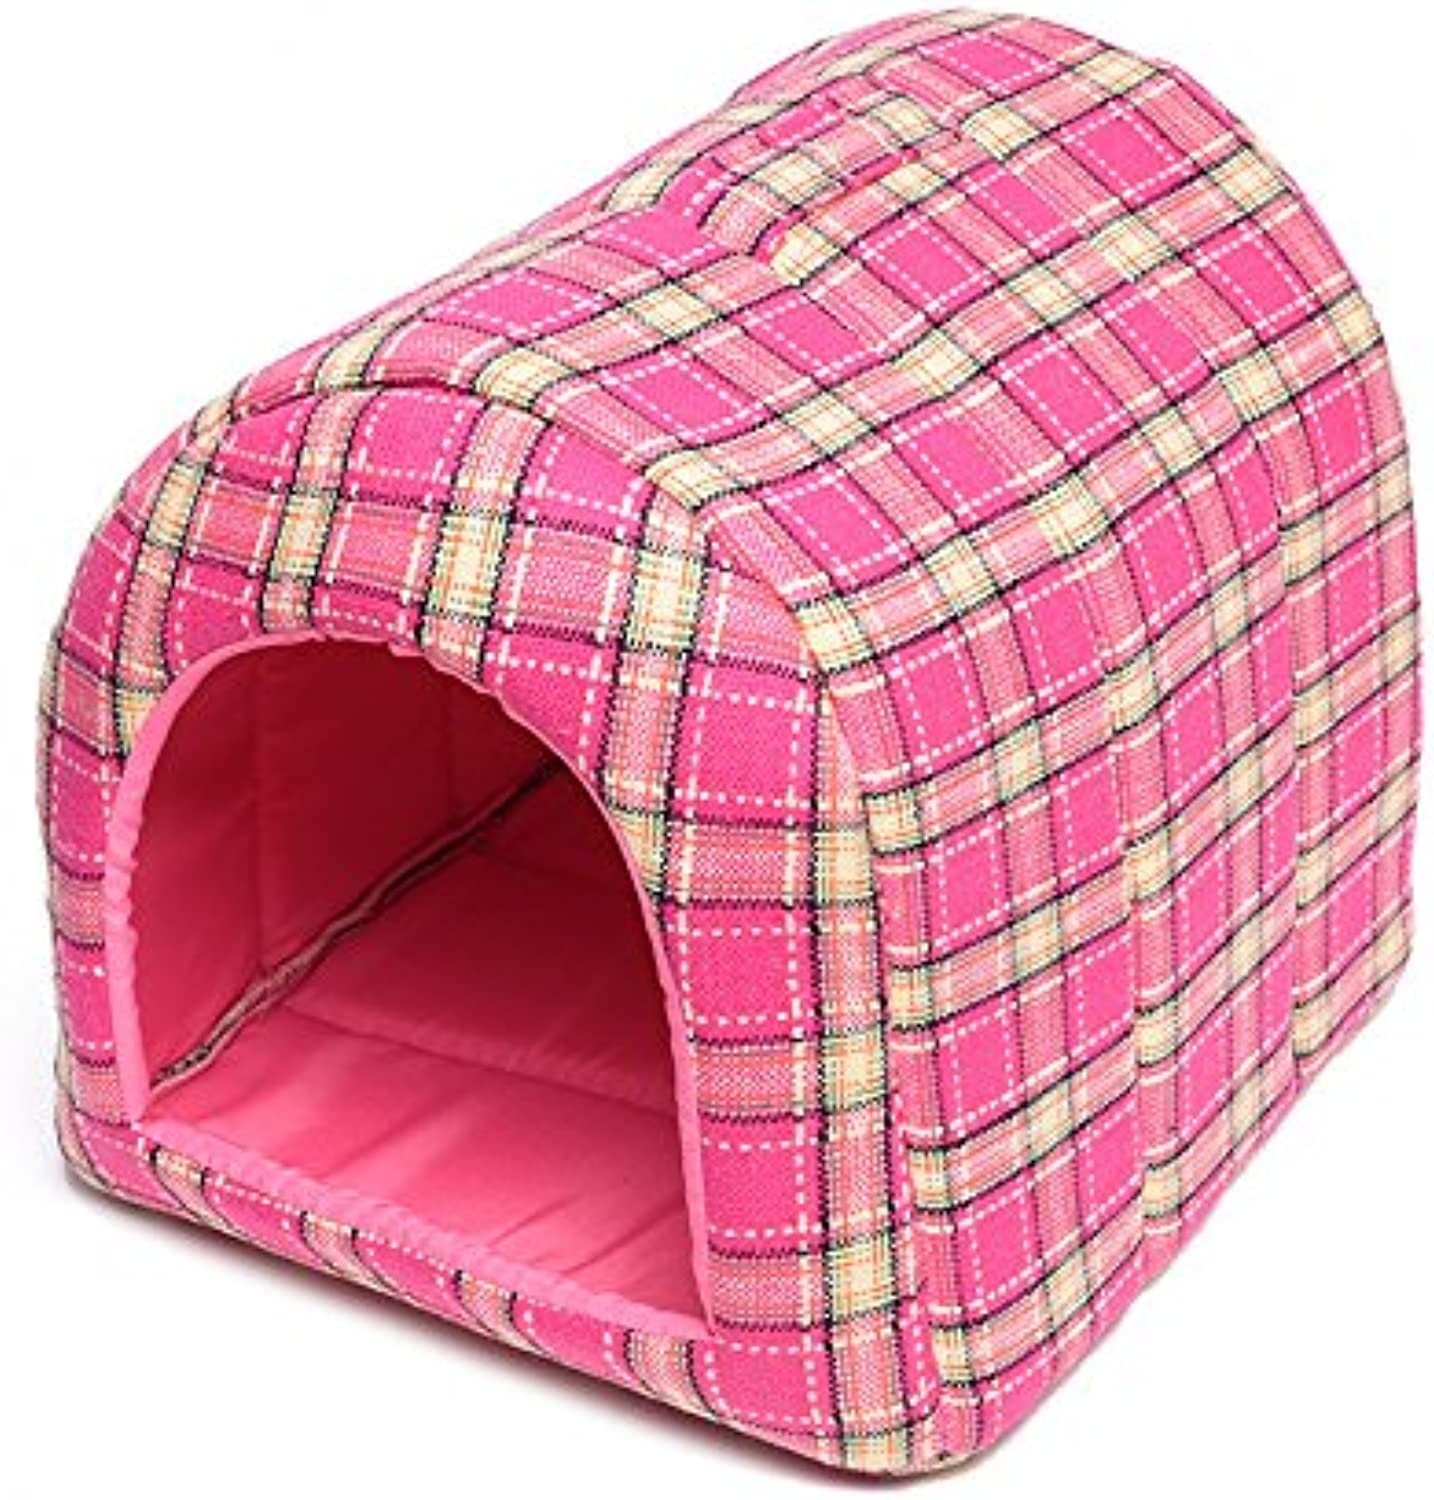 CHONGWUCX Collapsible simple sponge room cats and dogs pet nest